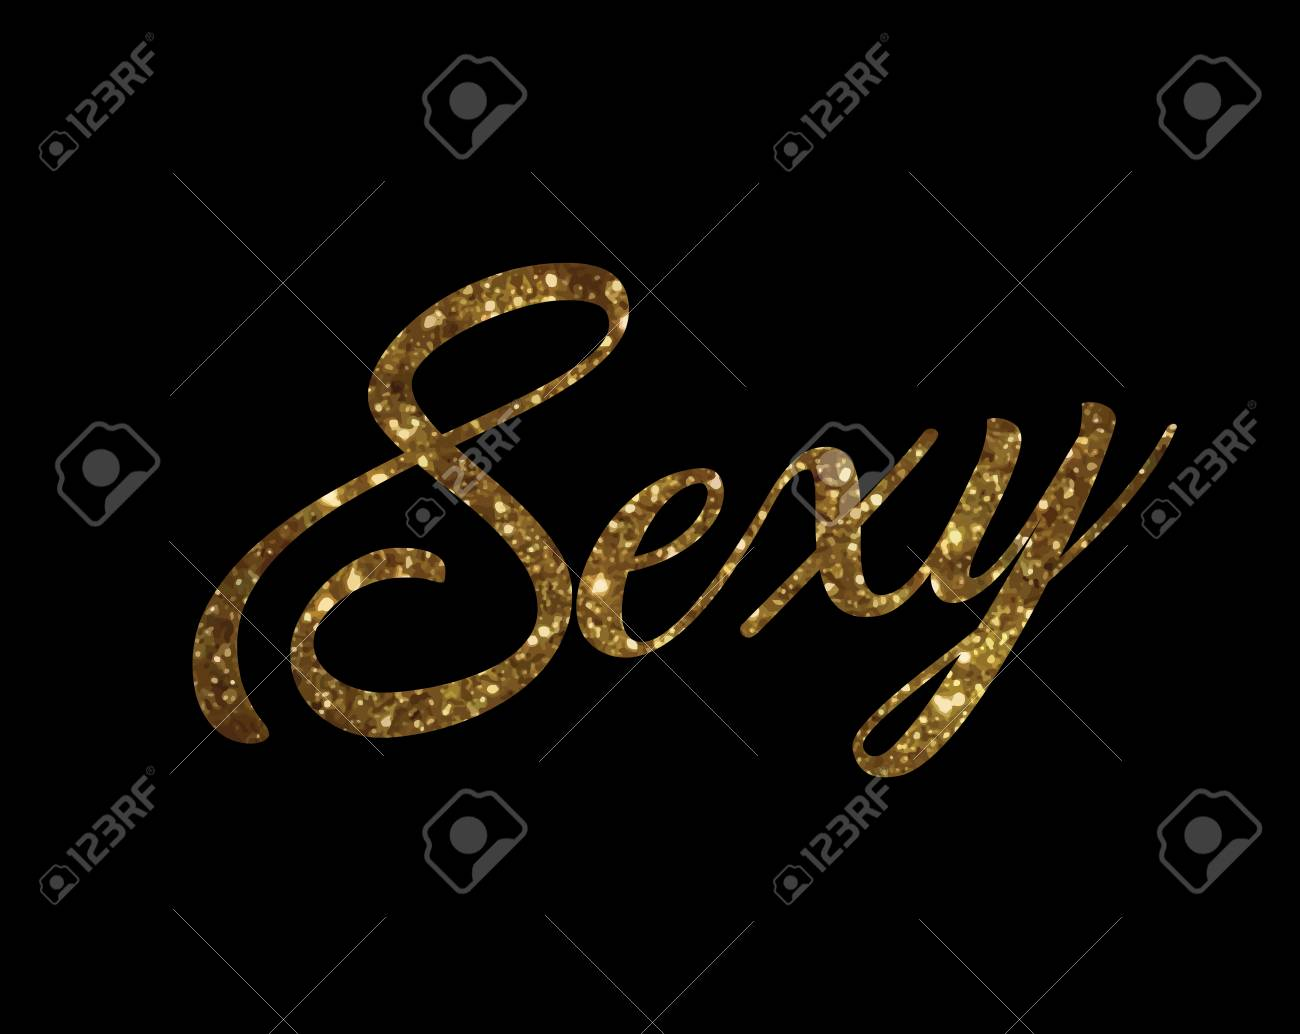 Images of the word sexy